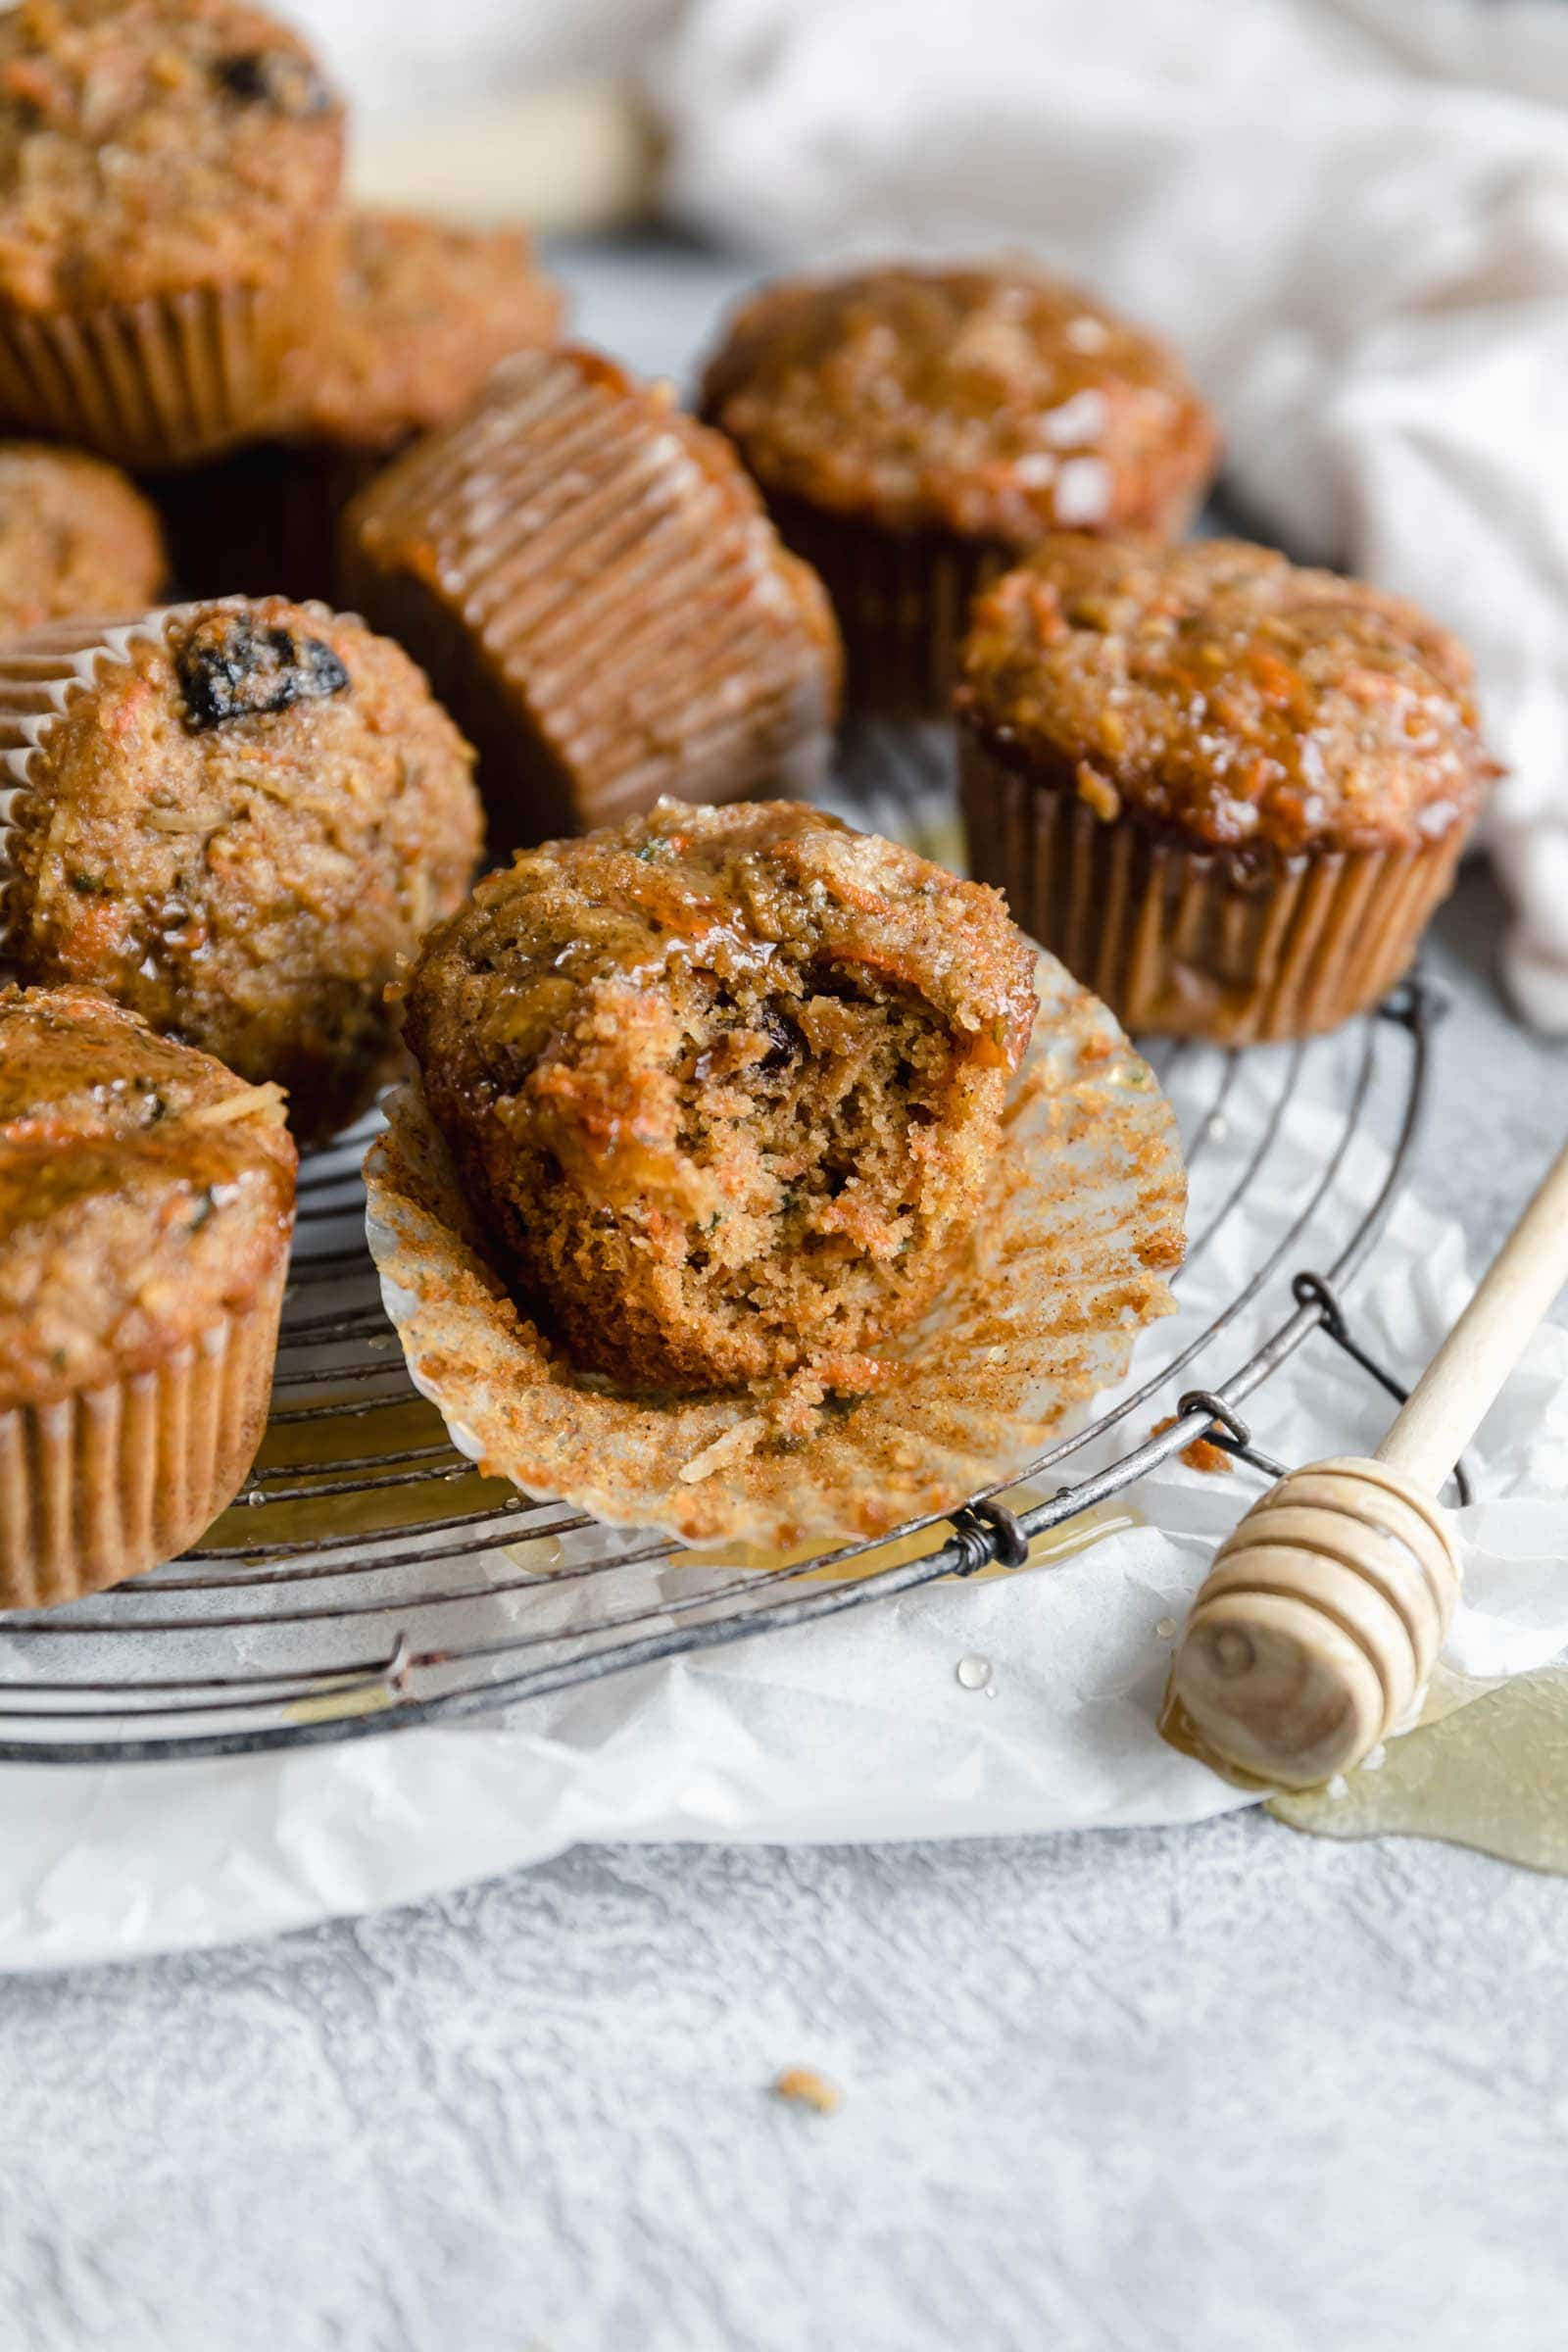 tender morning glory muffins with a bite taken out